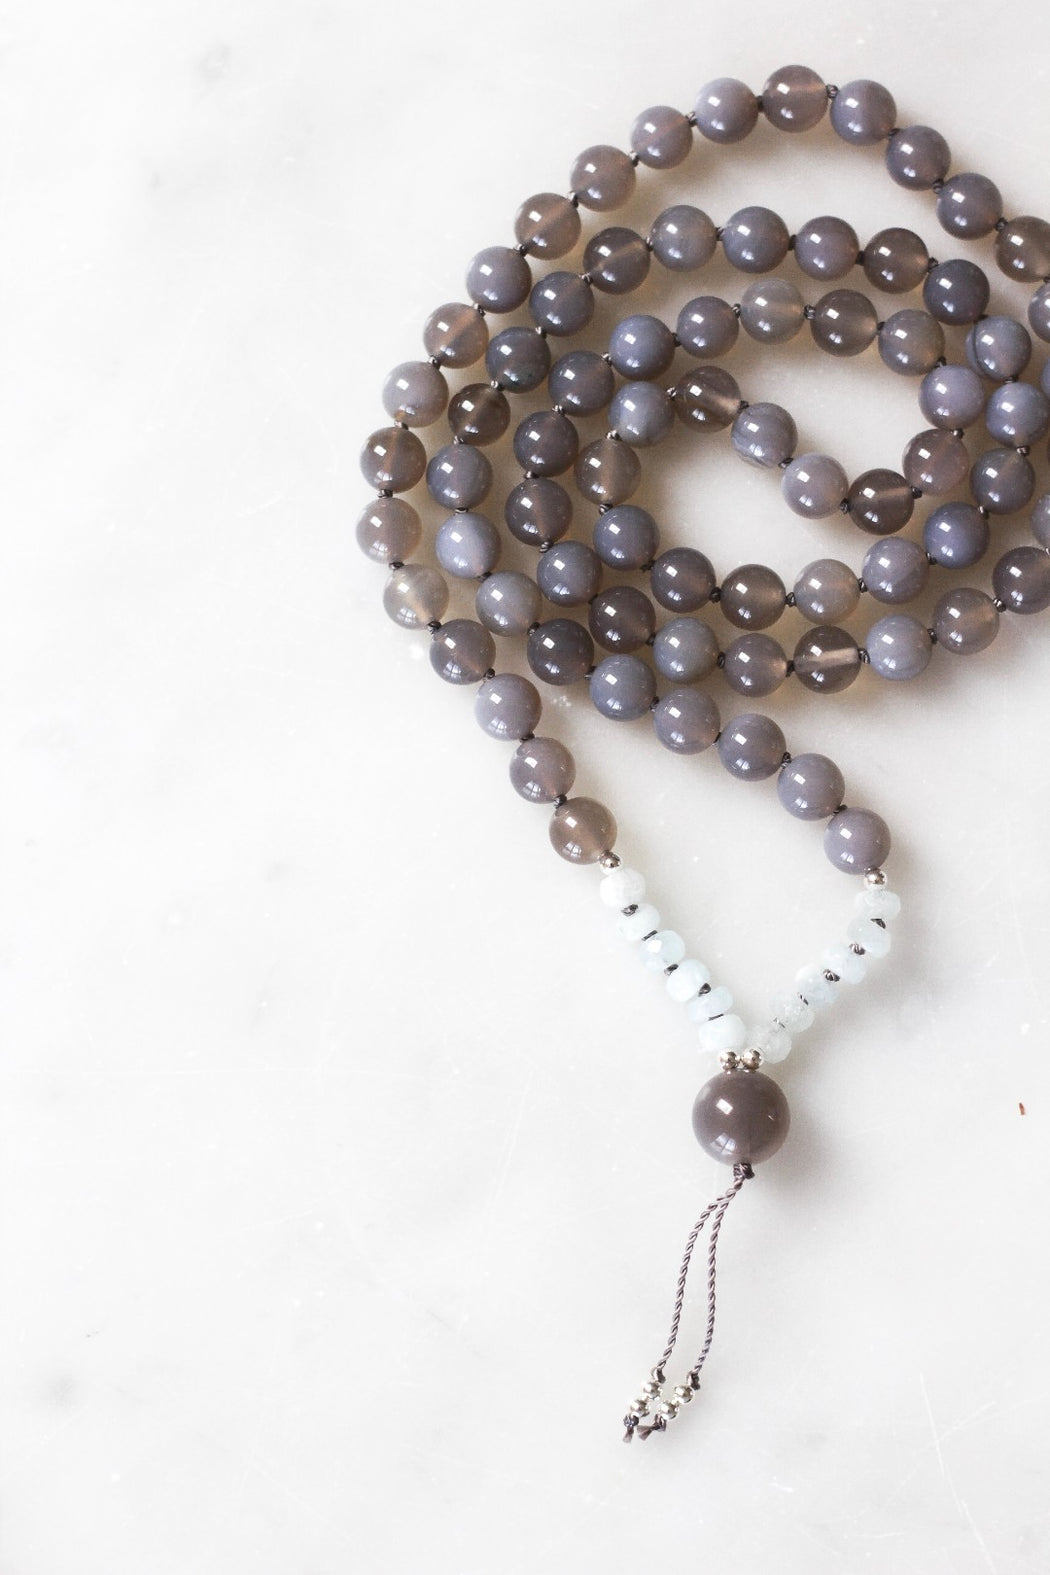 Serenity Beaded Mala Necklace With Agate Gemstone Beads